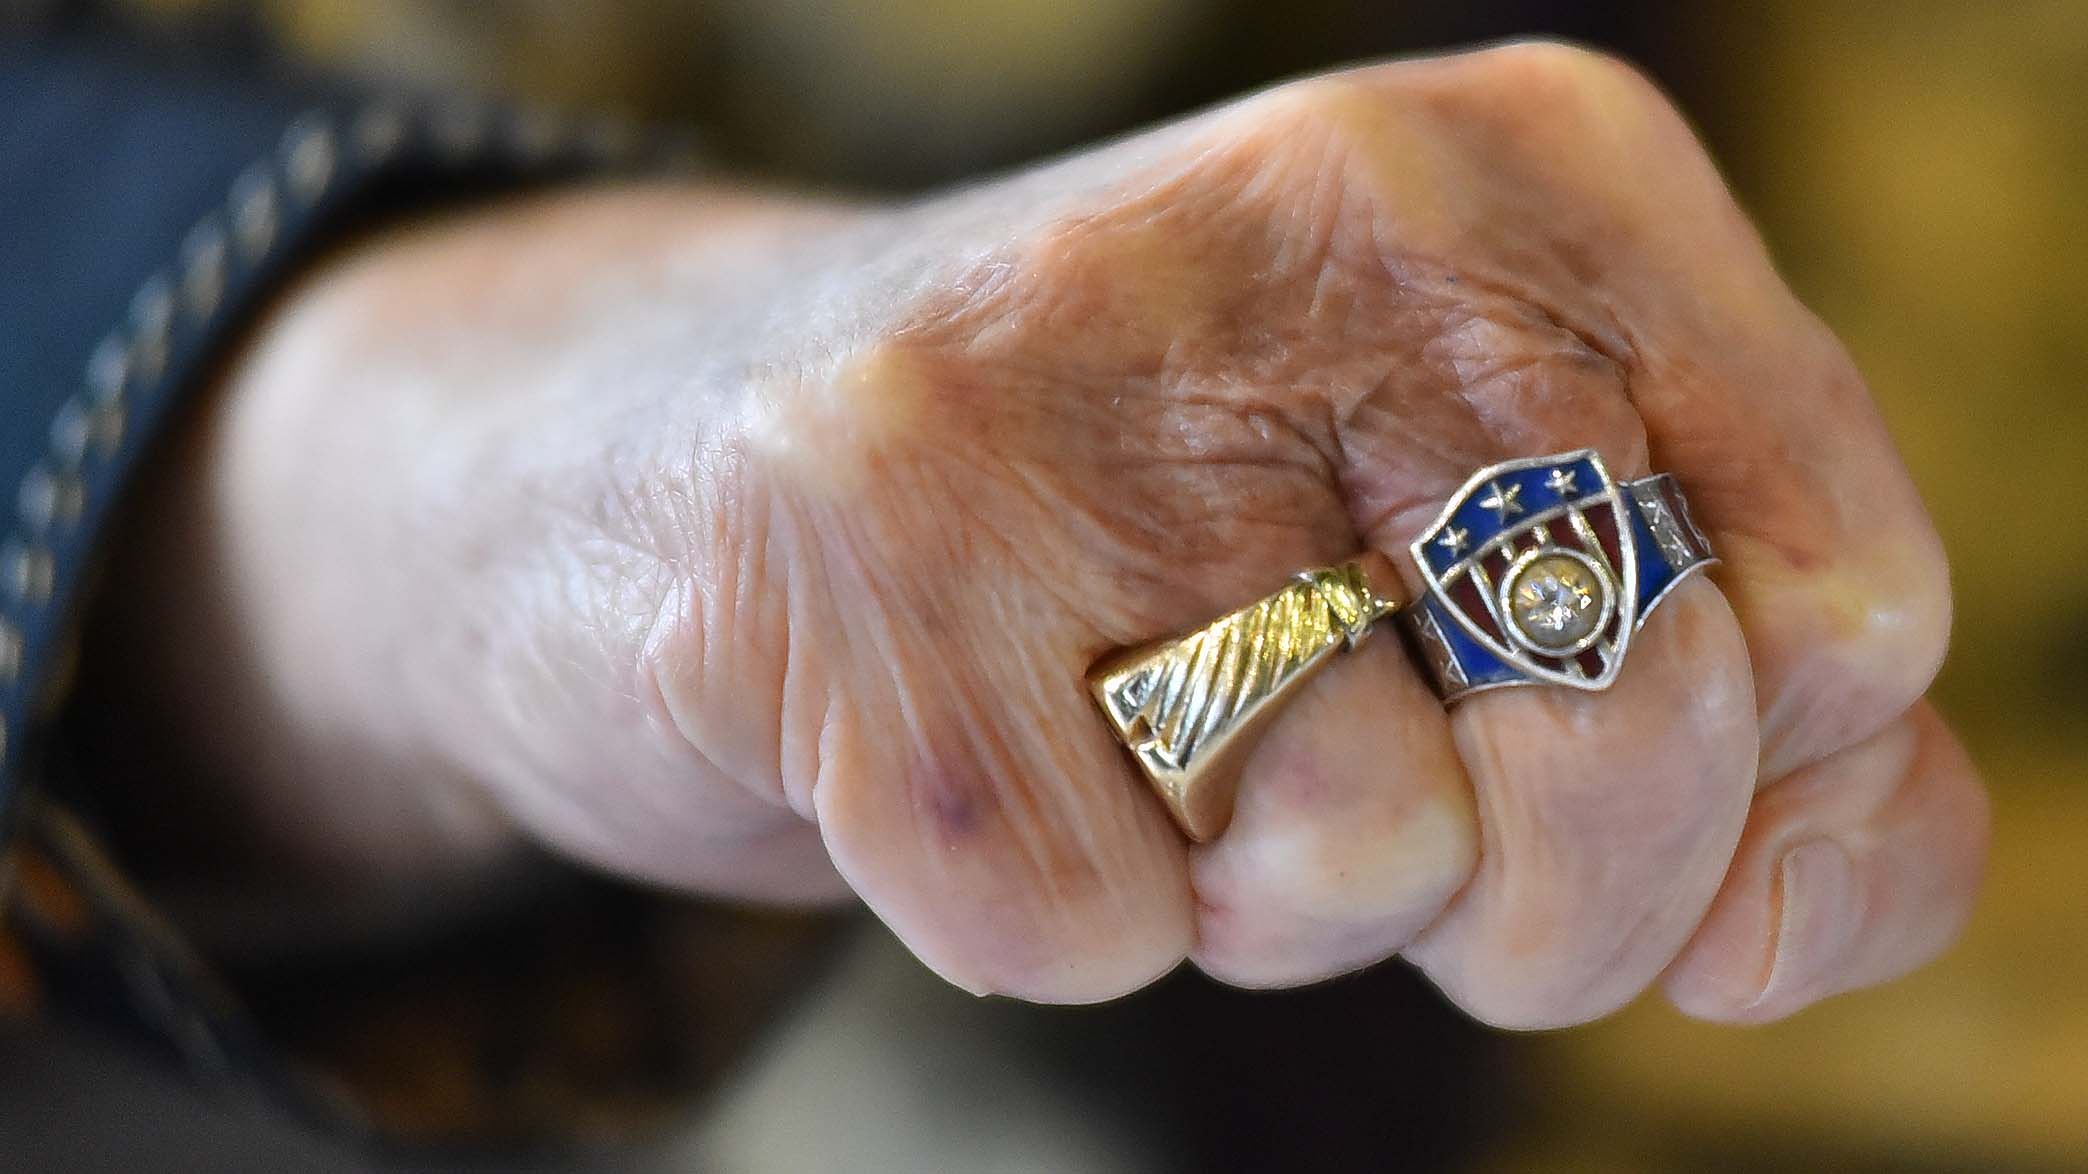 Artist Allen Bellman shows off his custom-made ring with a Captain America shield with a diamond in the middle.